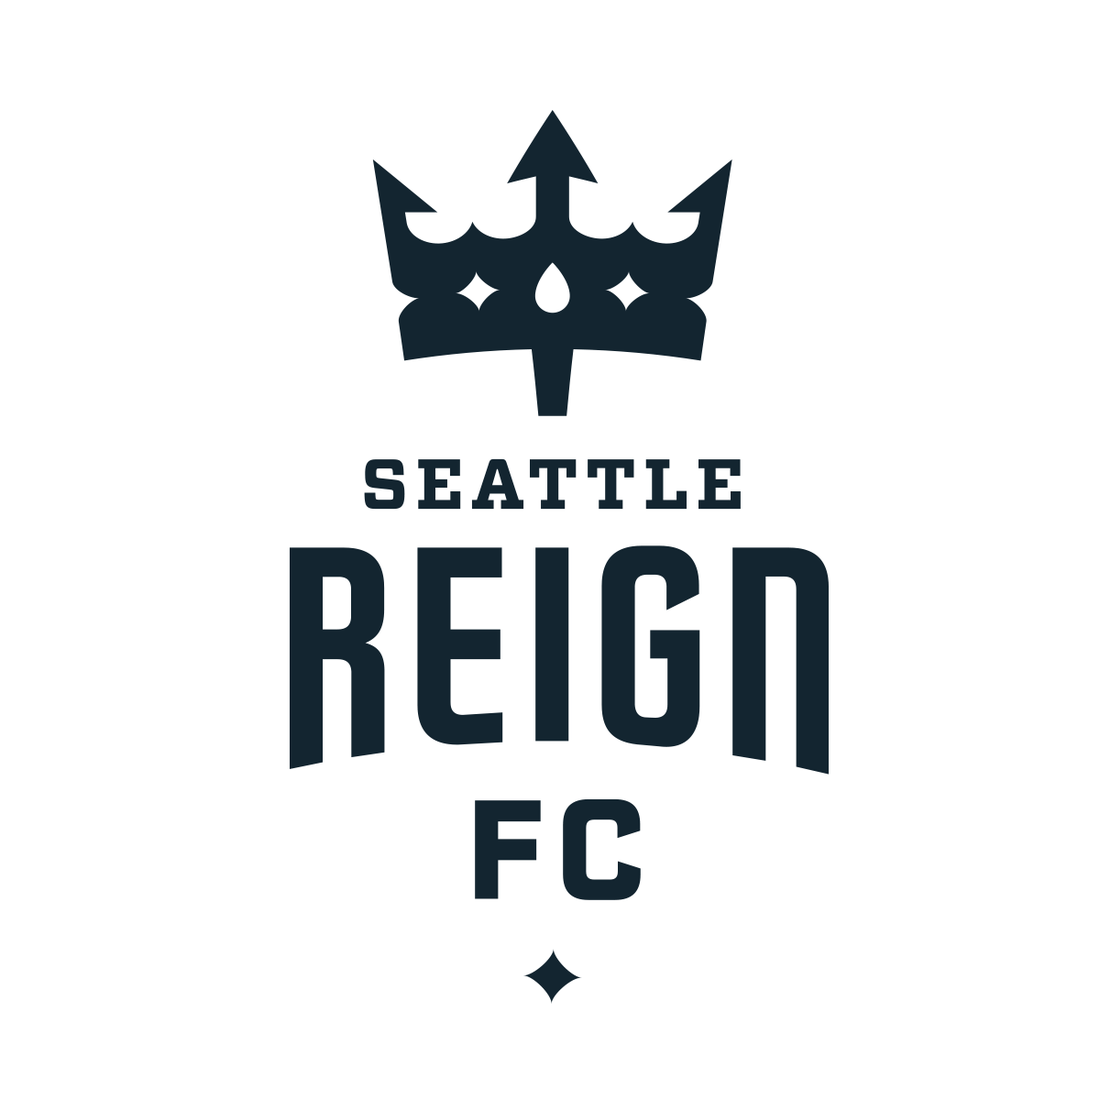 Pin sports logopng on pinterest - Find This Pin And More On Sports Seattle Reign